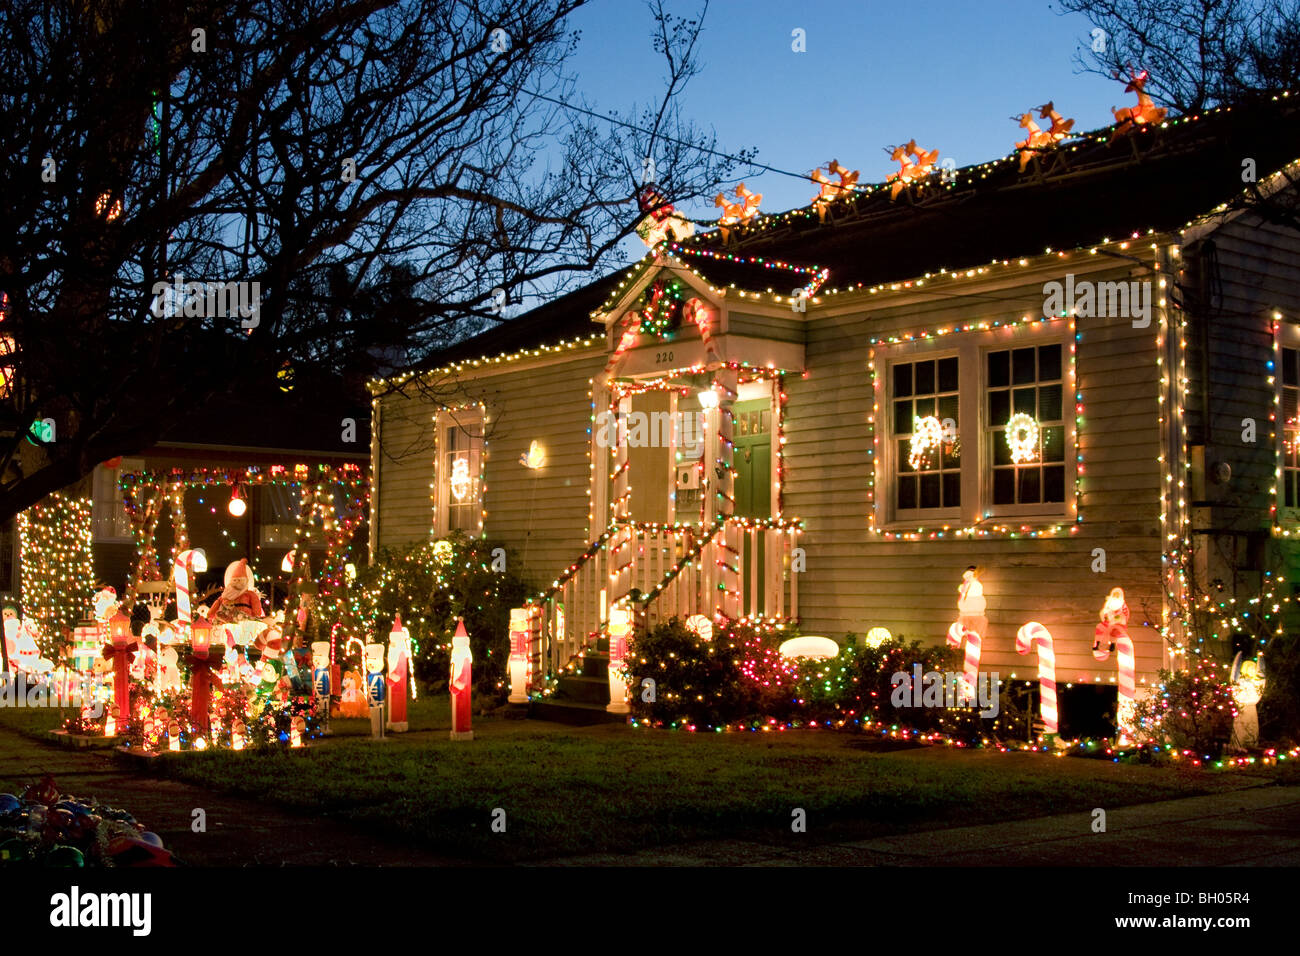 tacky christmas decorations decorating the front of a residential home stock image